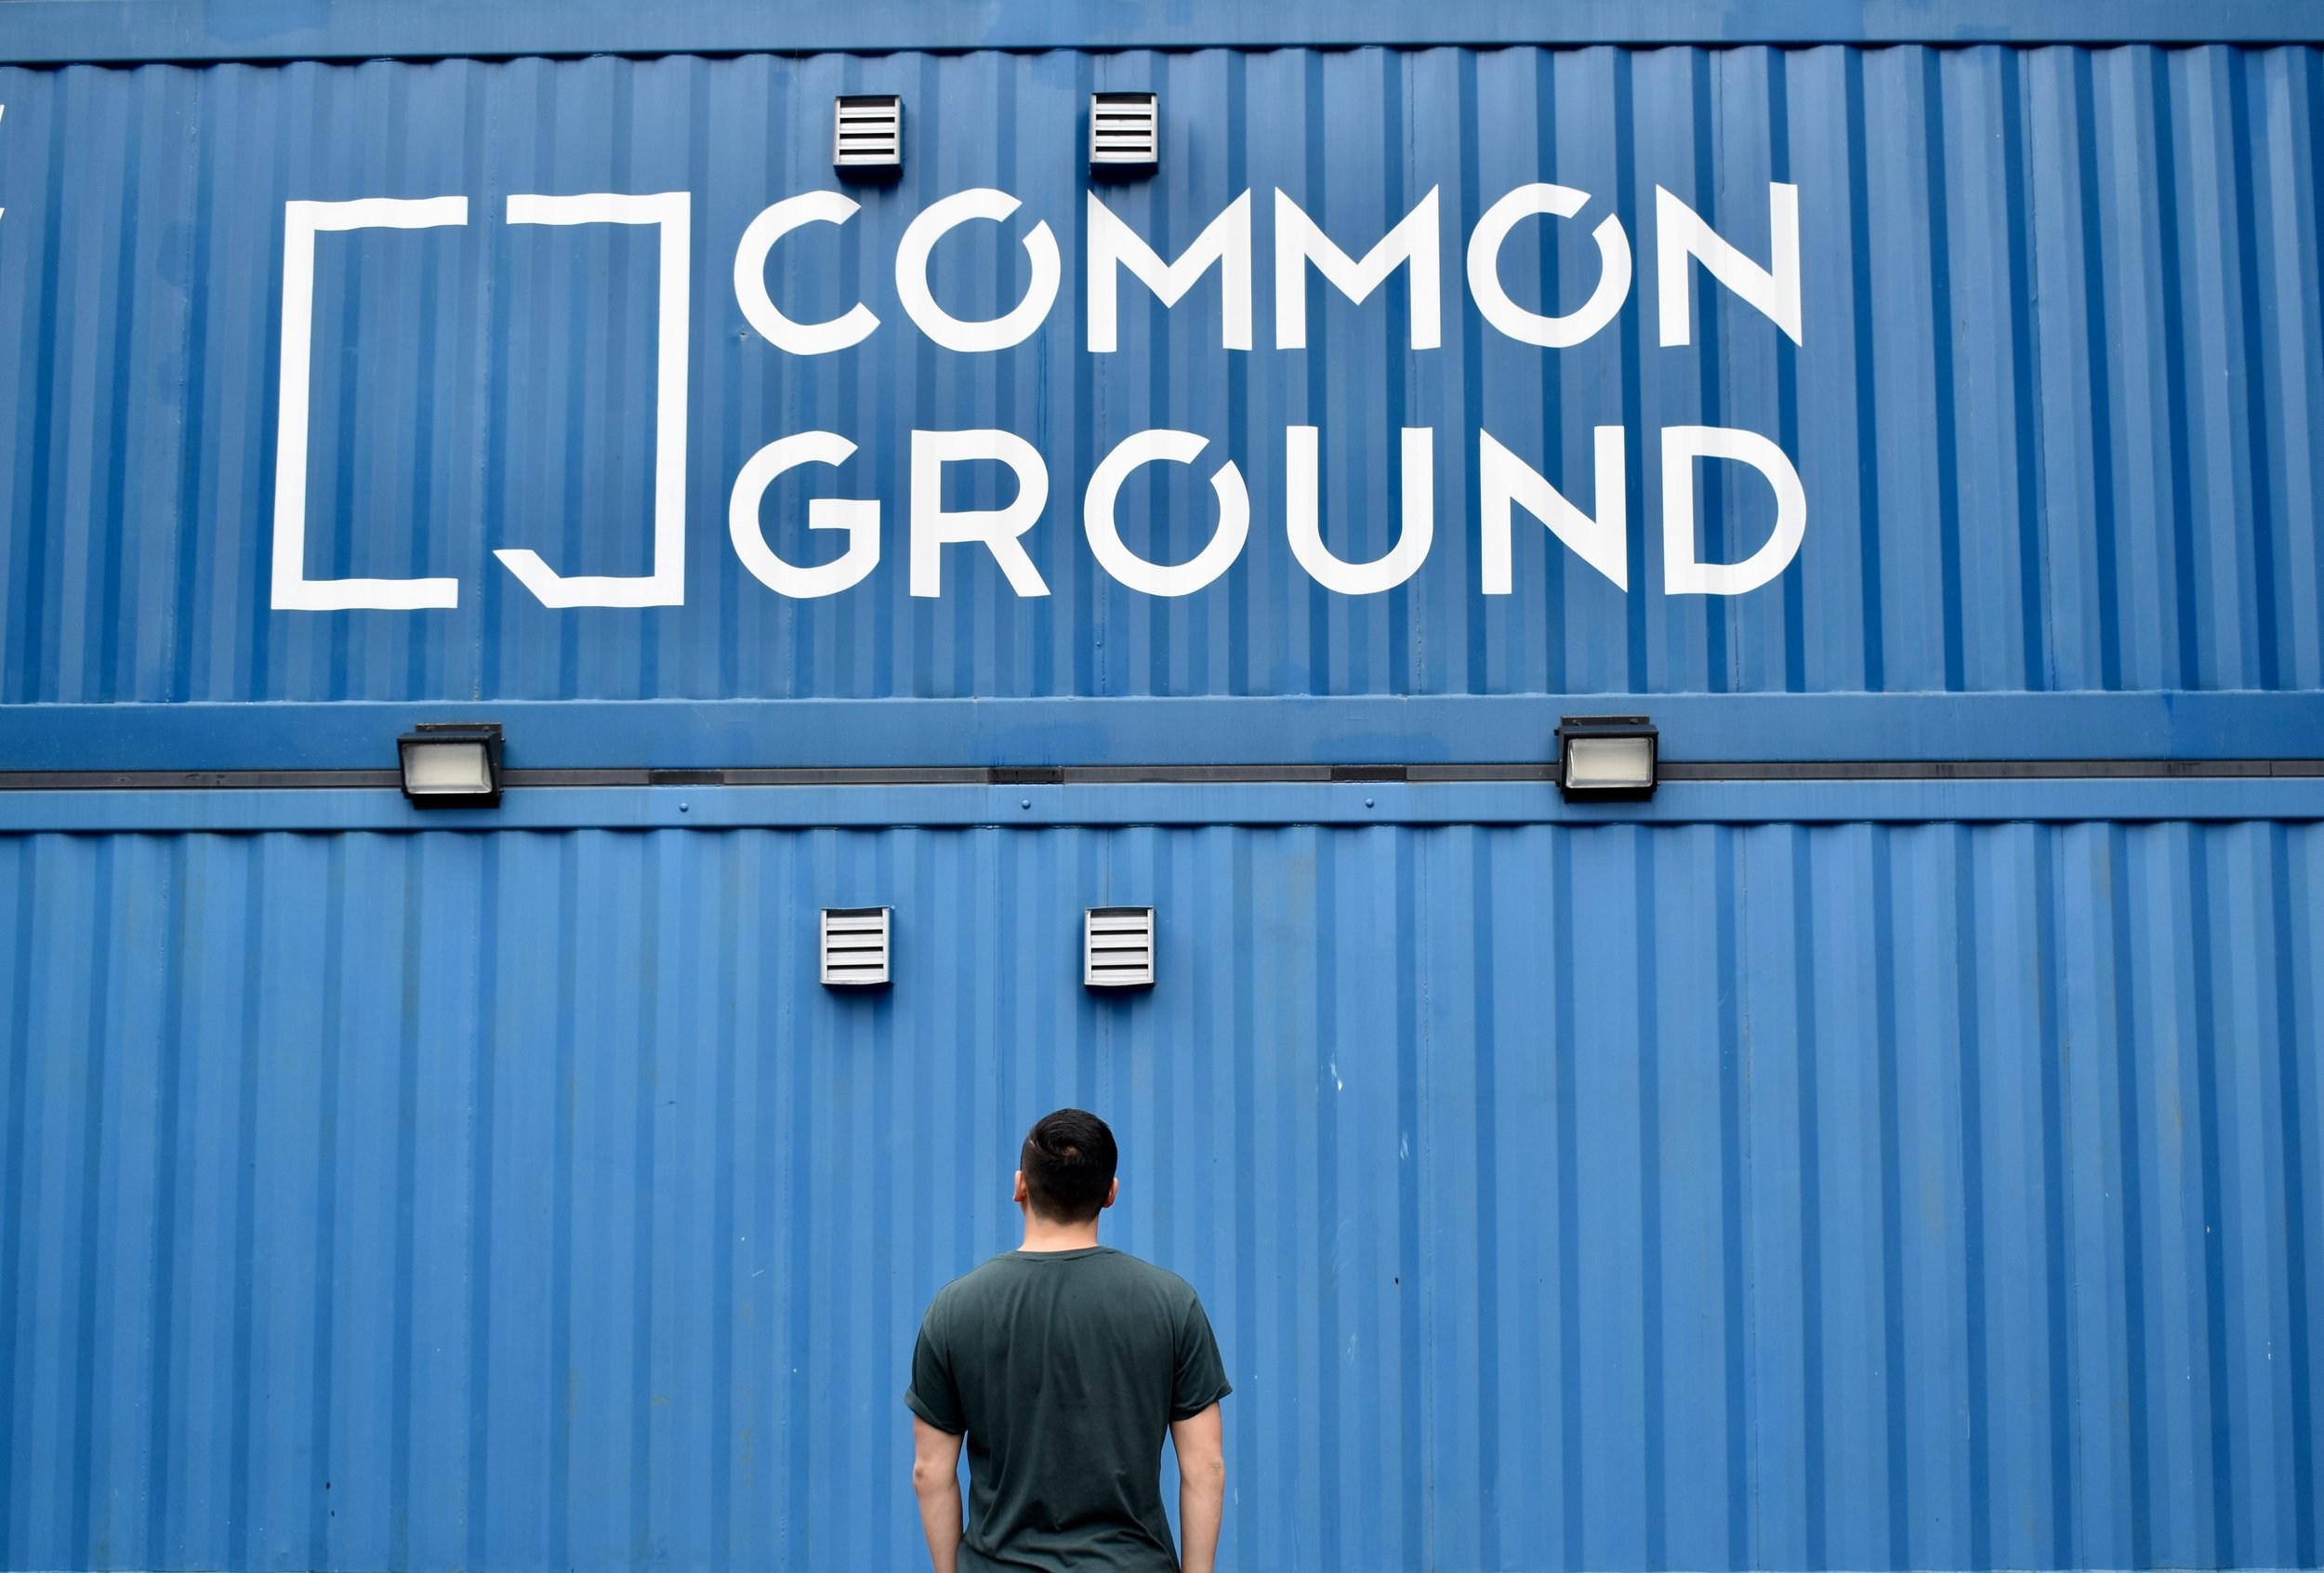 Infamous Commonground shipping containers